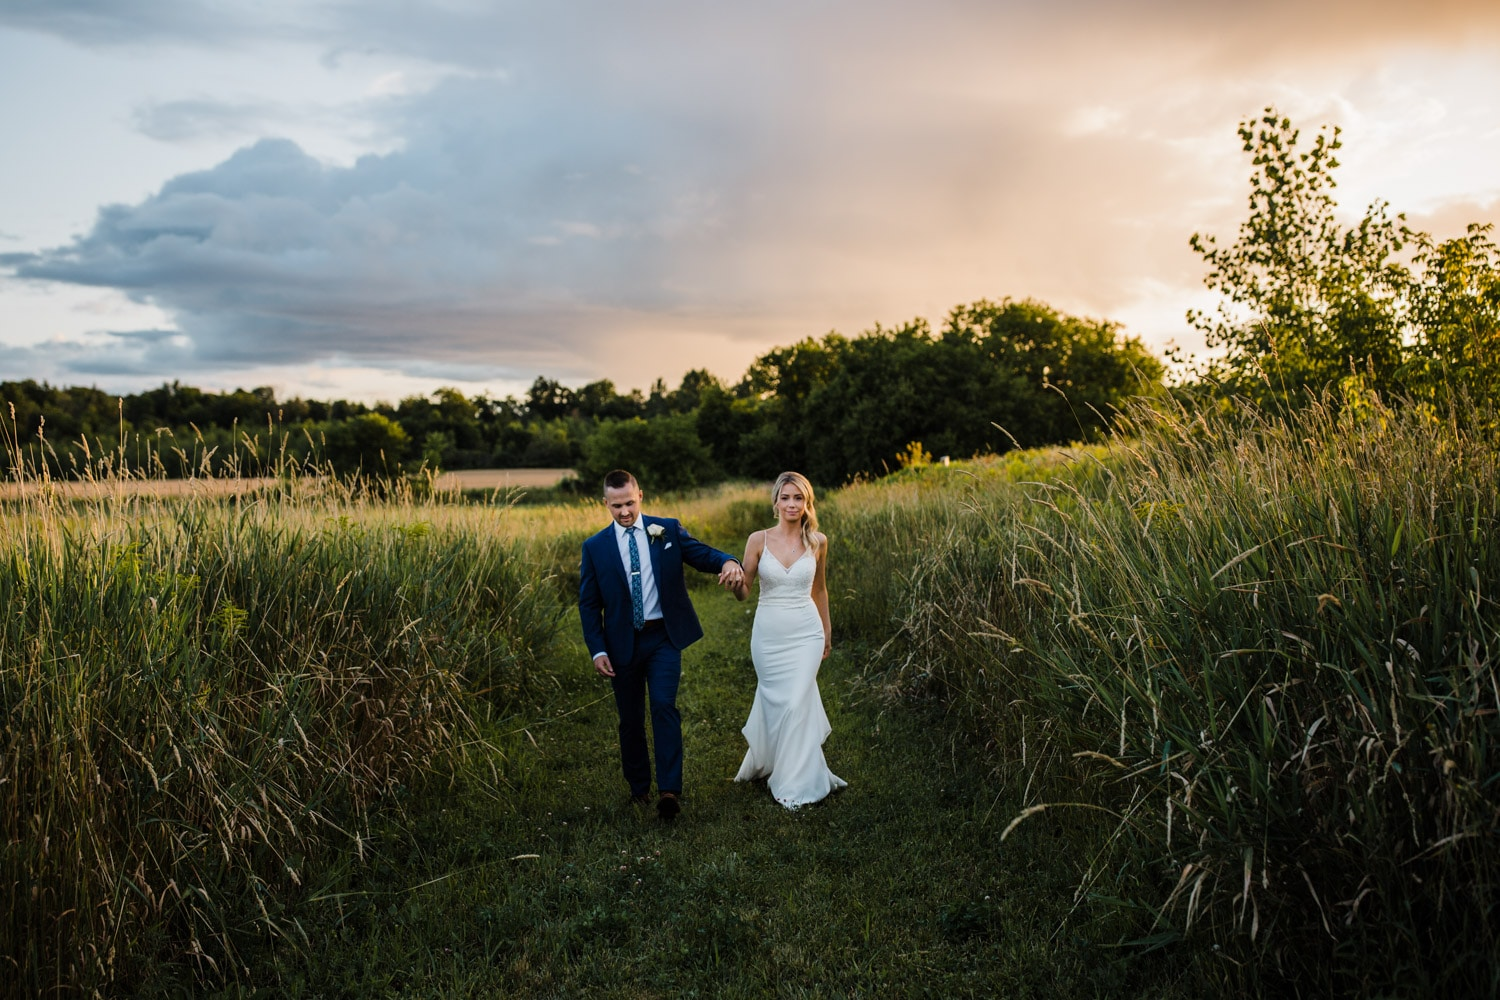 bride and groom walk through field together at sunset - ottawa wedding photographer